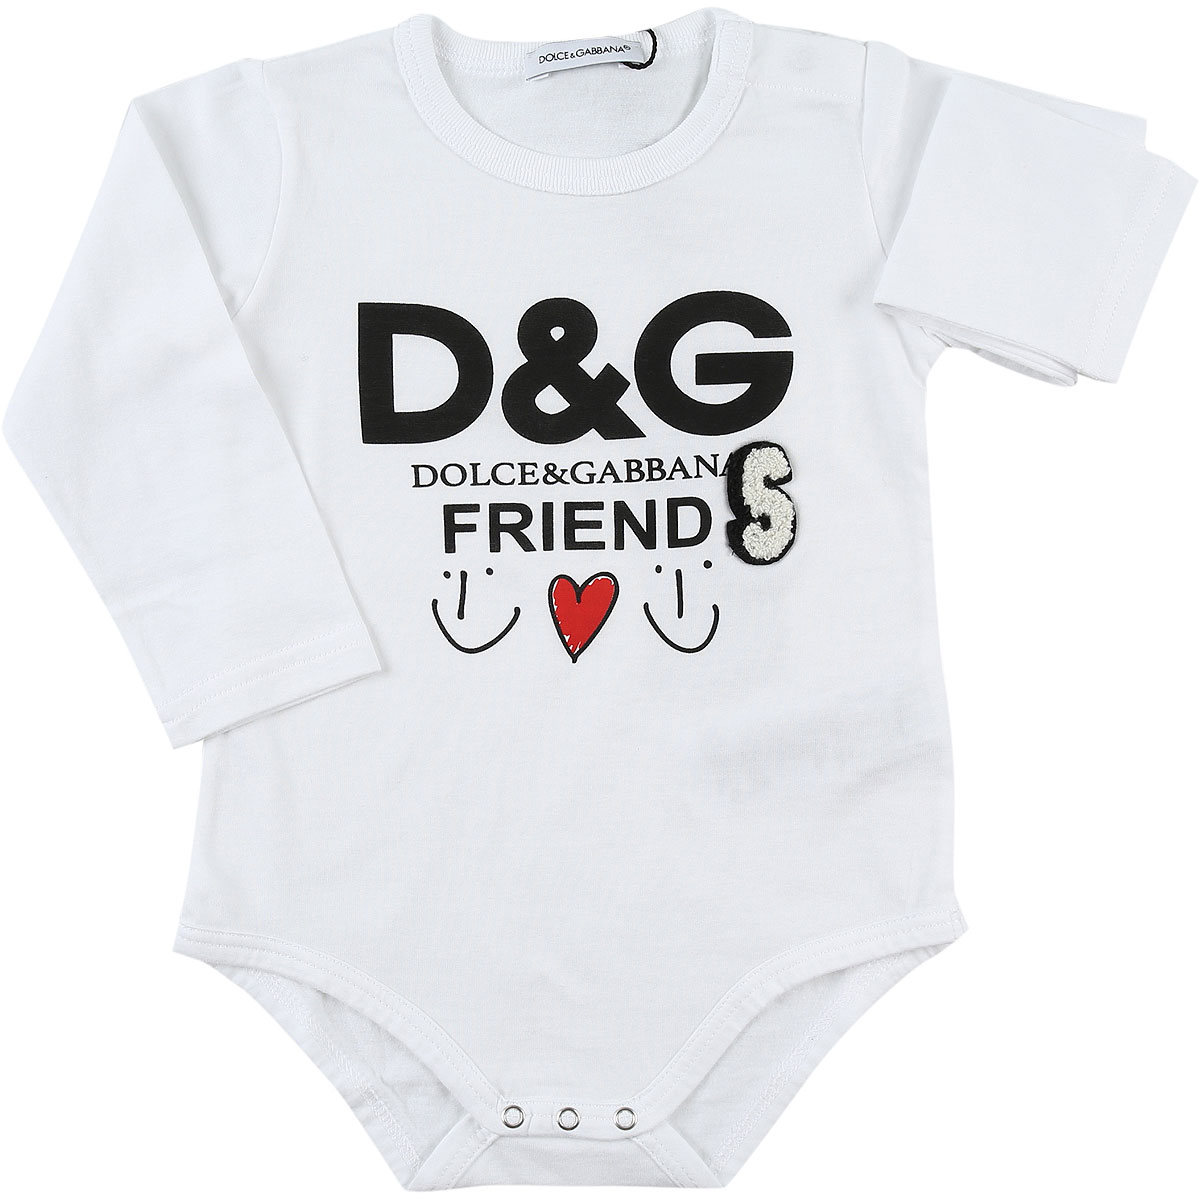 Dolce & Gabbana Baby Bodysuits & Onesies for Girls On Sale in Outlet, White, Cotton, 2019, 24M 9M